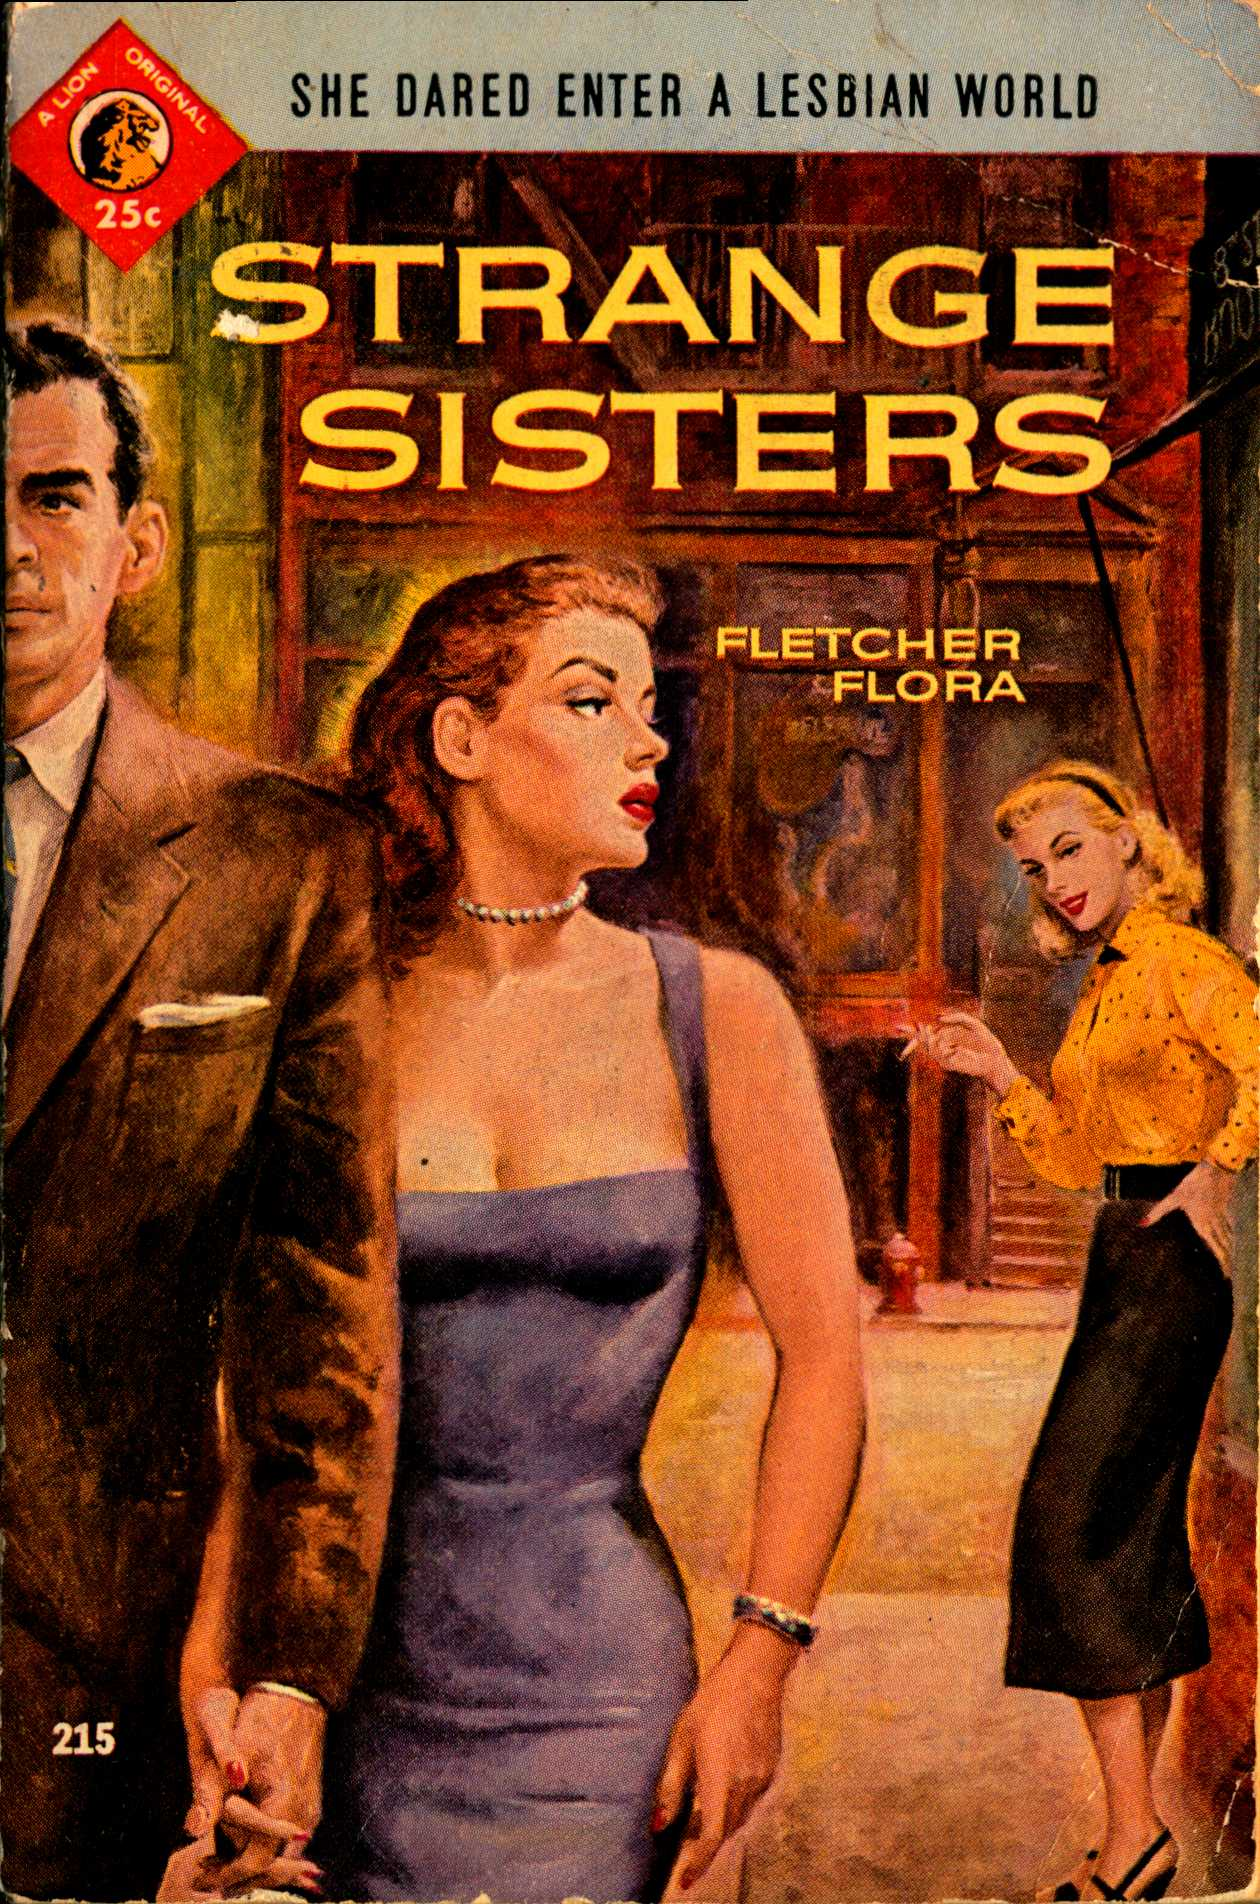 Cover to Strange Sisters by Fletcher Flora